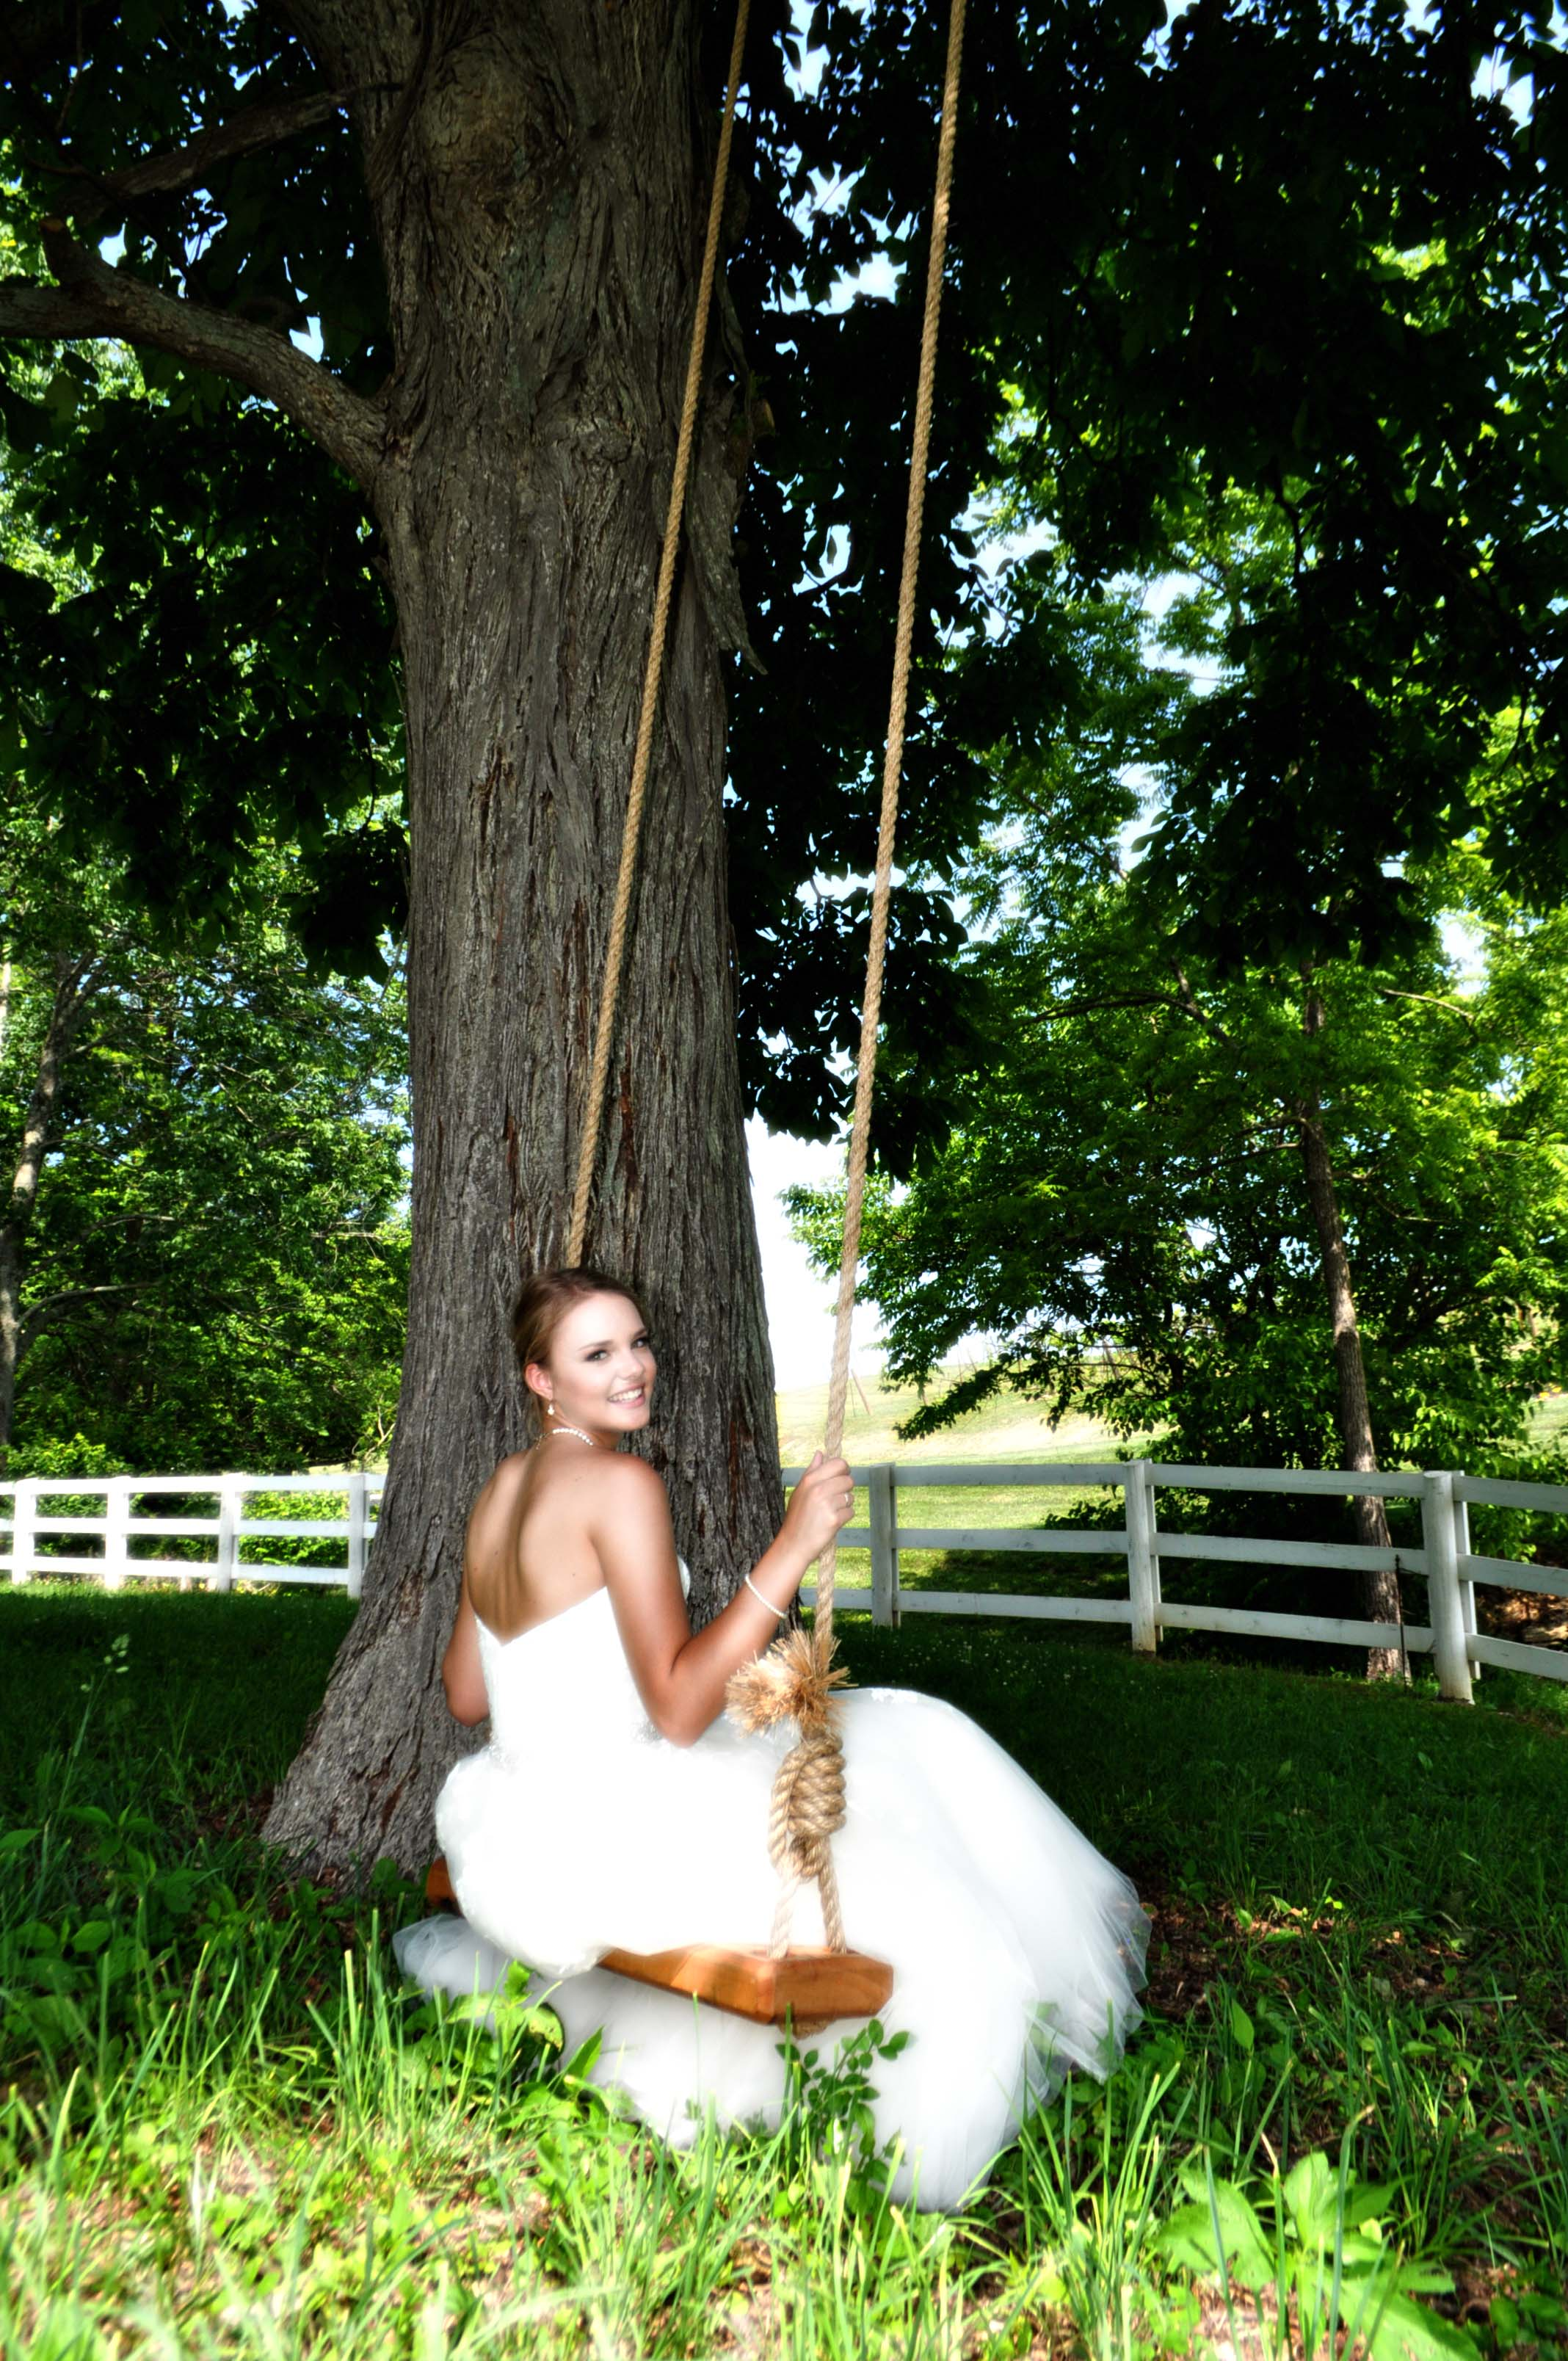 Bride on tree swing from behind